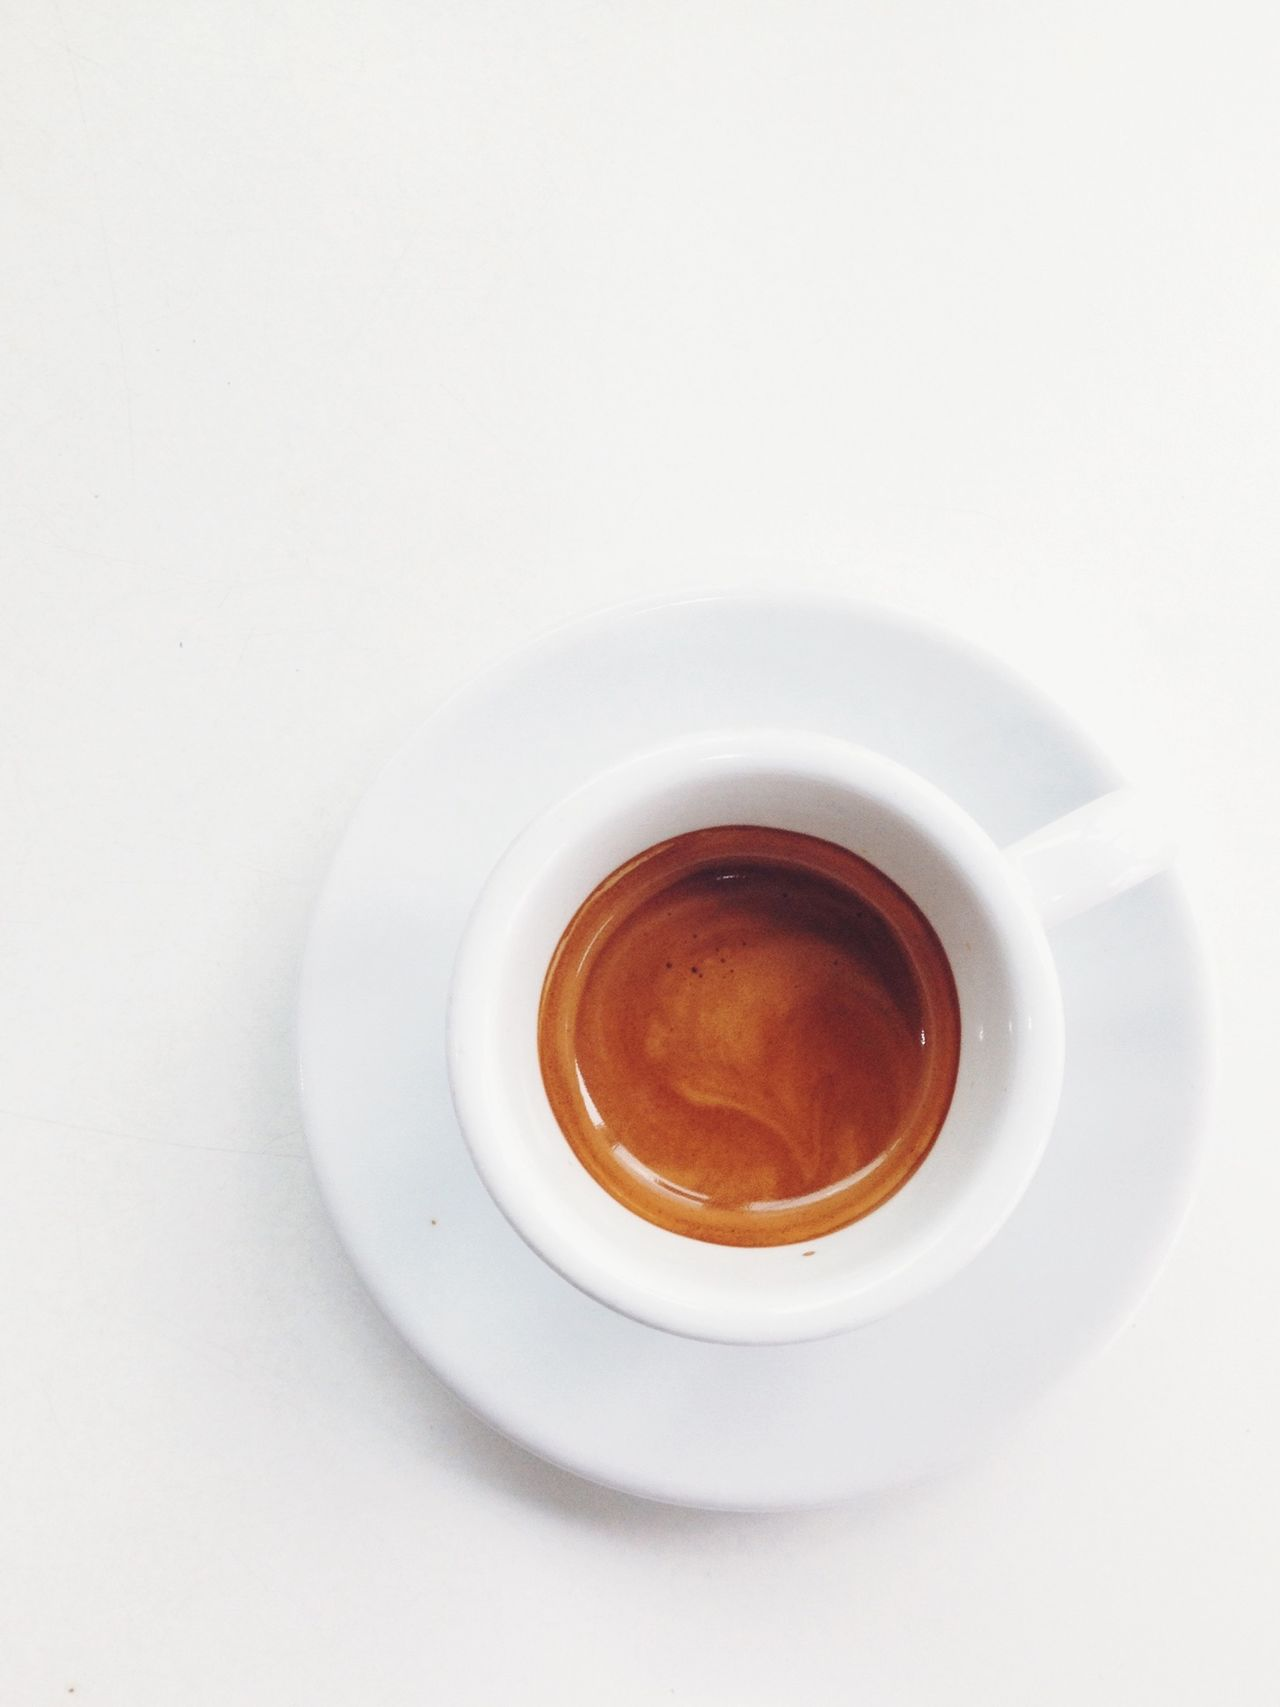 BEST EXPRESSO IN TOWN Expresso  Cafe Coffee Town EyeEm Bestsellers